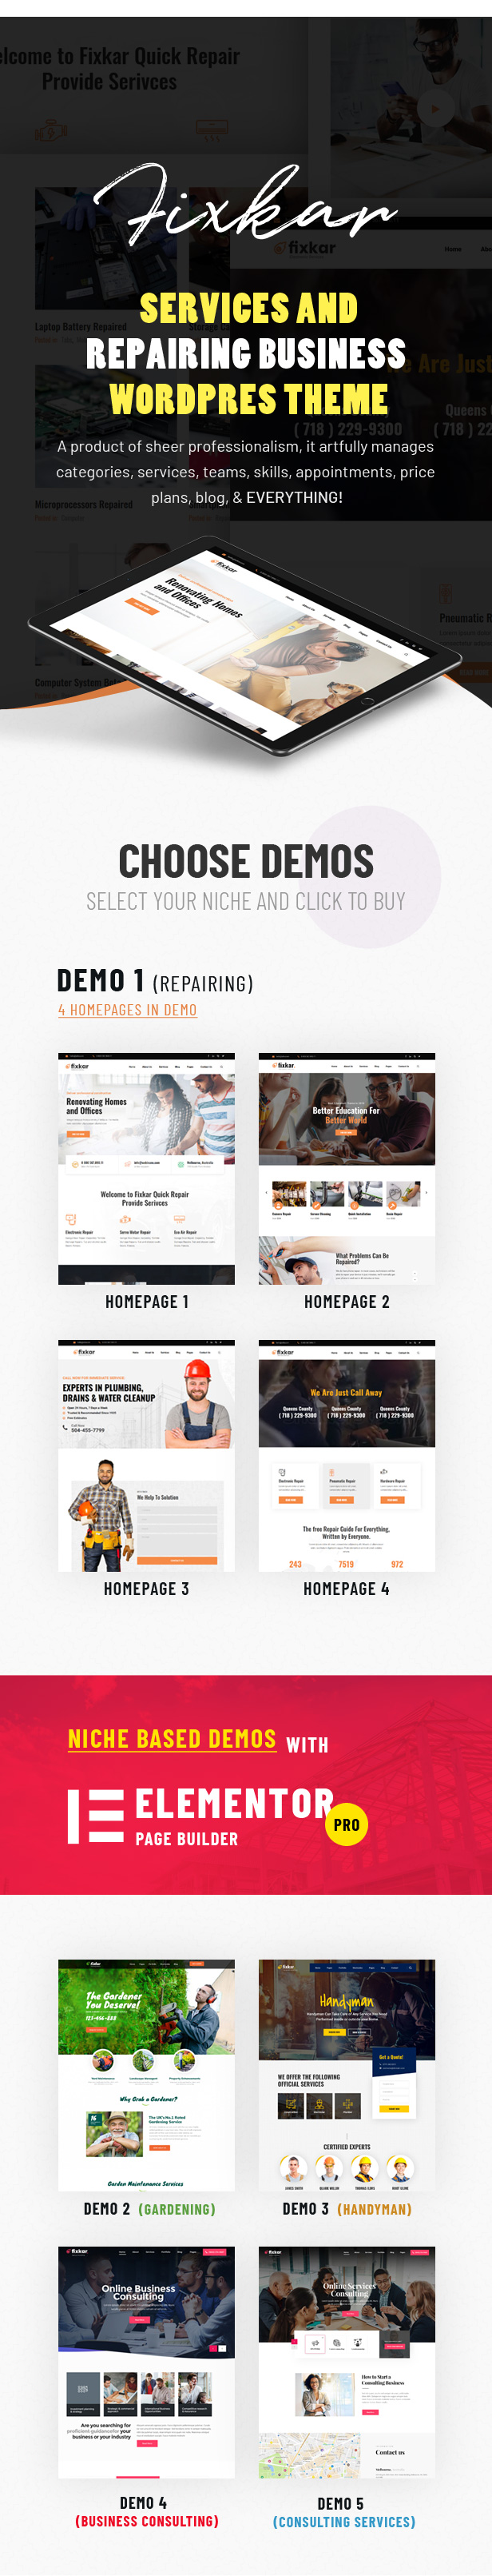 FixKar - HTML Template for Services and Repairing Business - 1